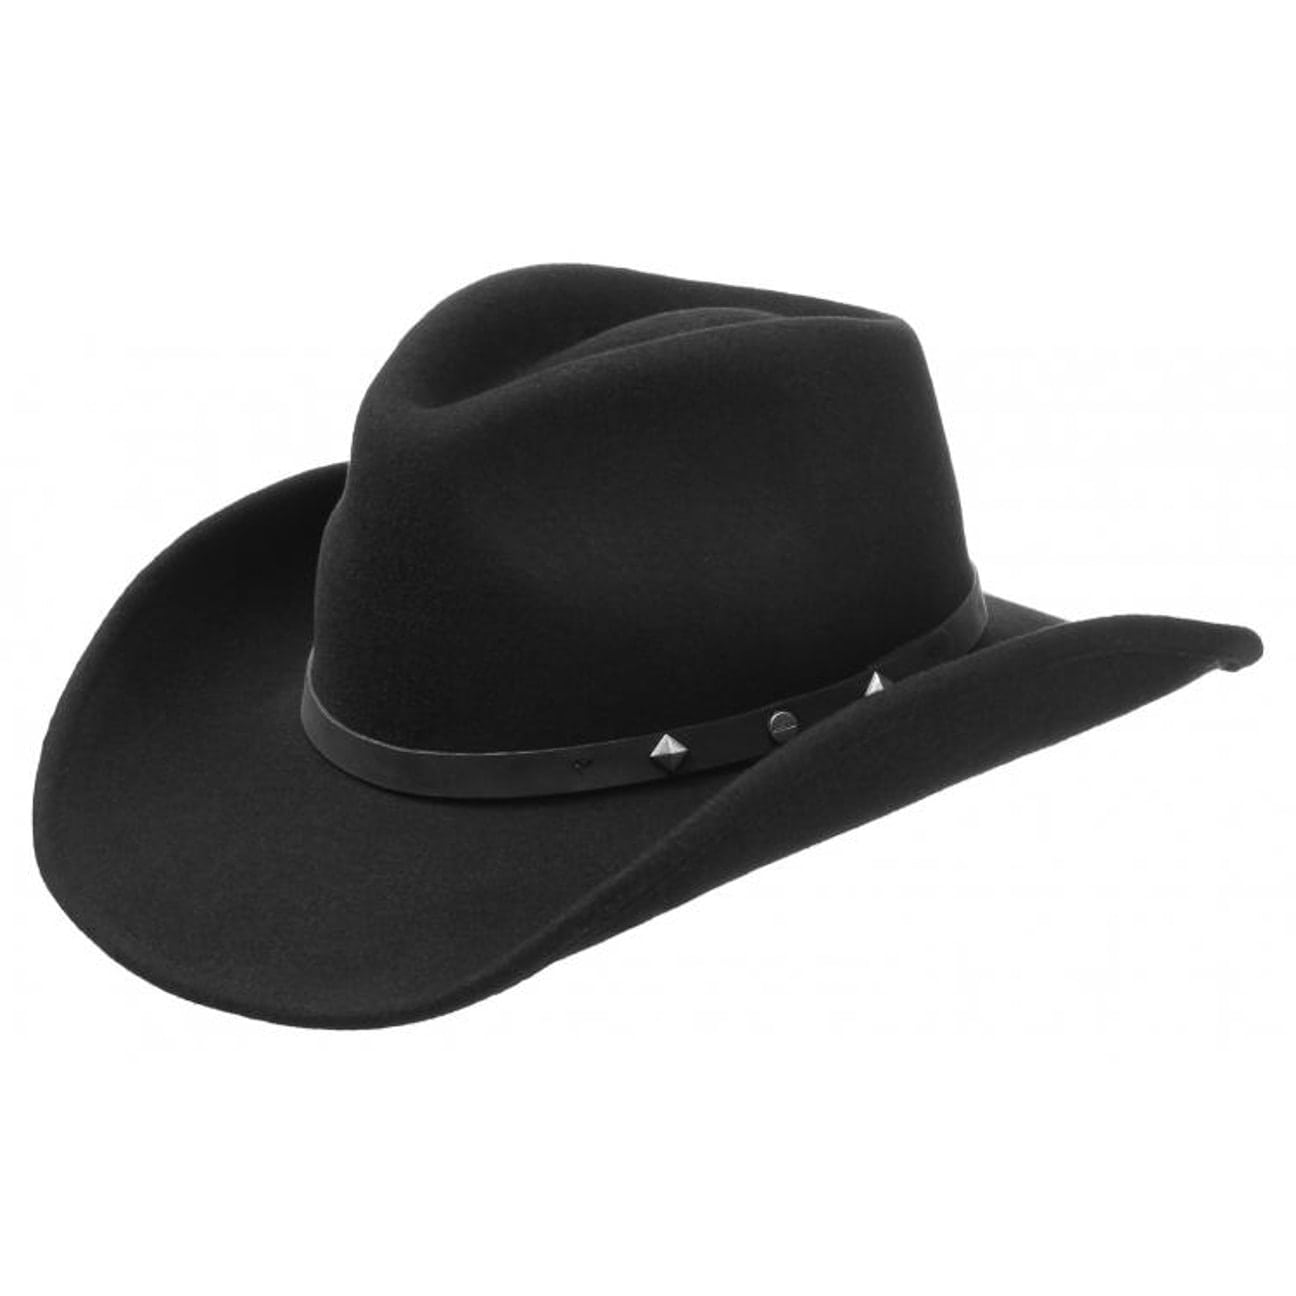 ... Bangs Cappello Western by Stetson - nero 1 d98205adcbc